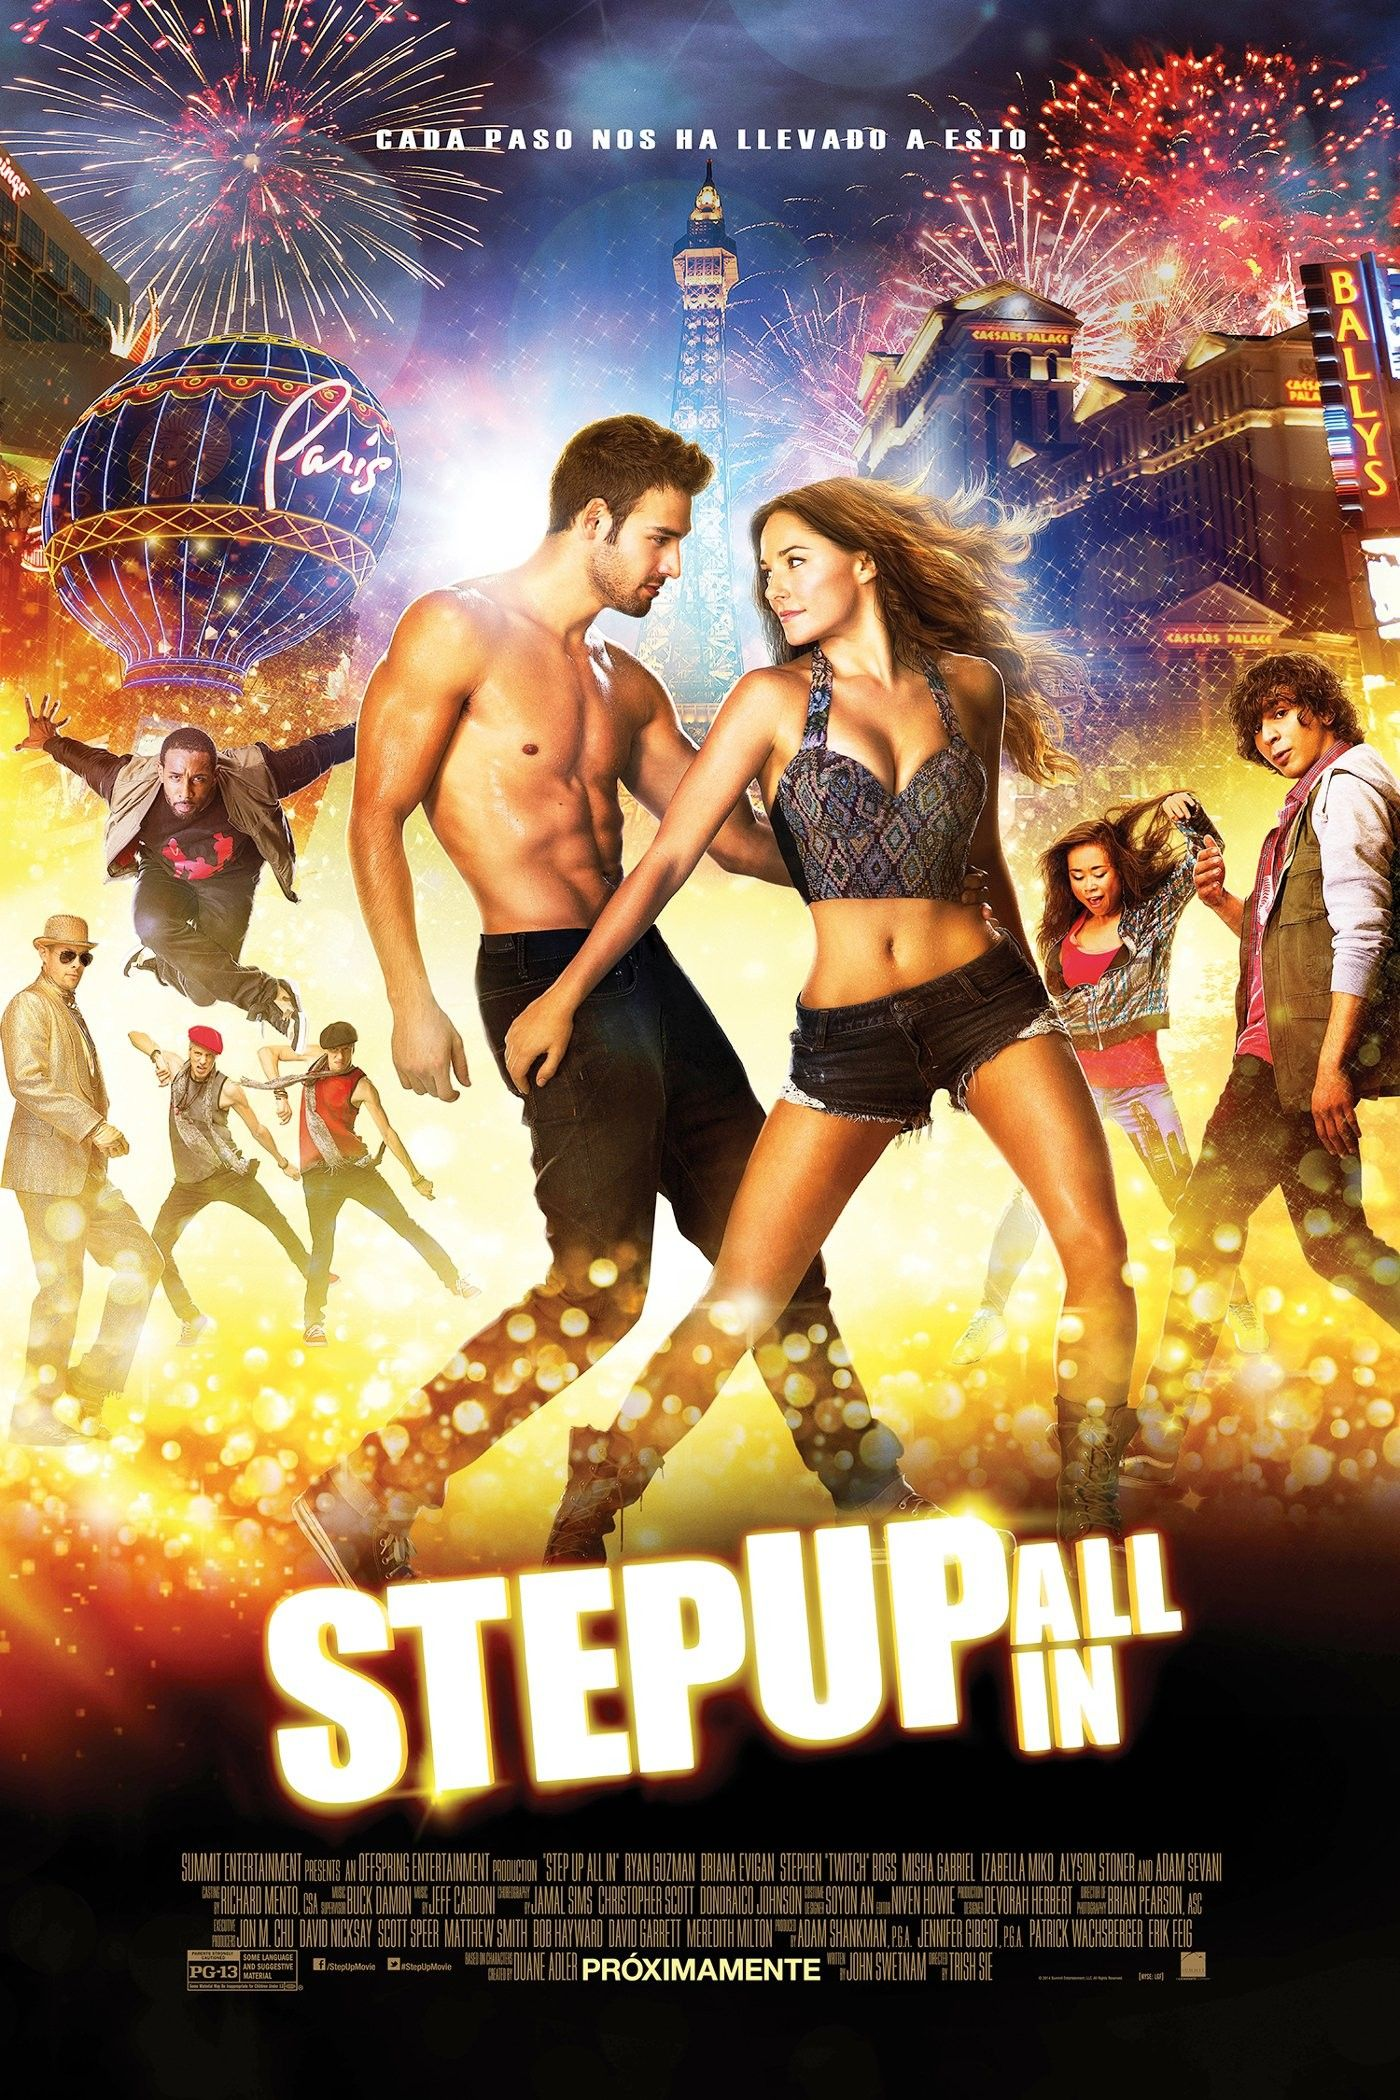 Ver Step Up All In Online Gratis 2014 Hd Pelicula Completa Espanol Step Up Movies New Movie Posters Dance Movies